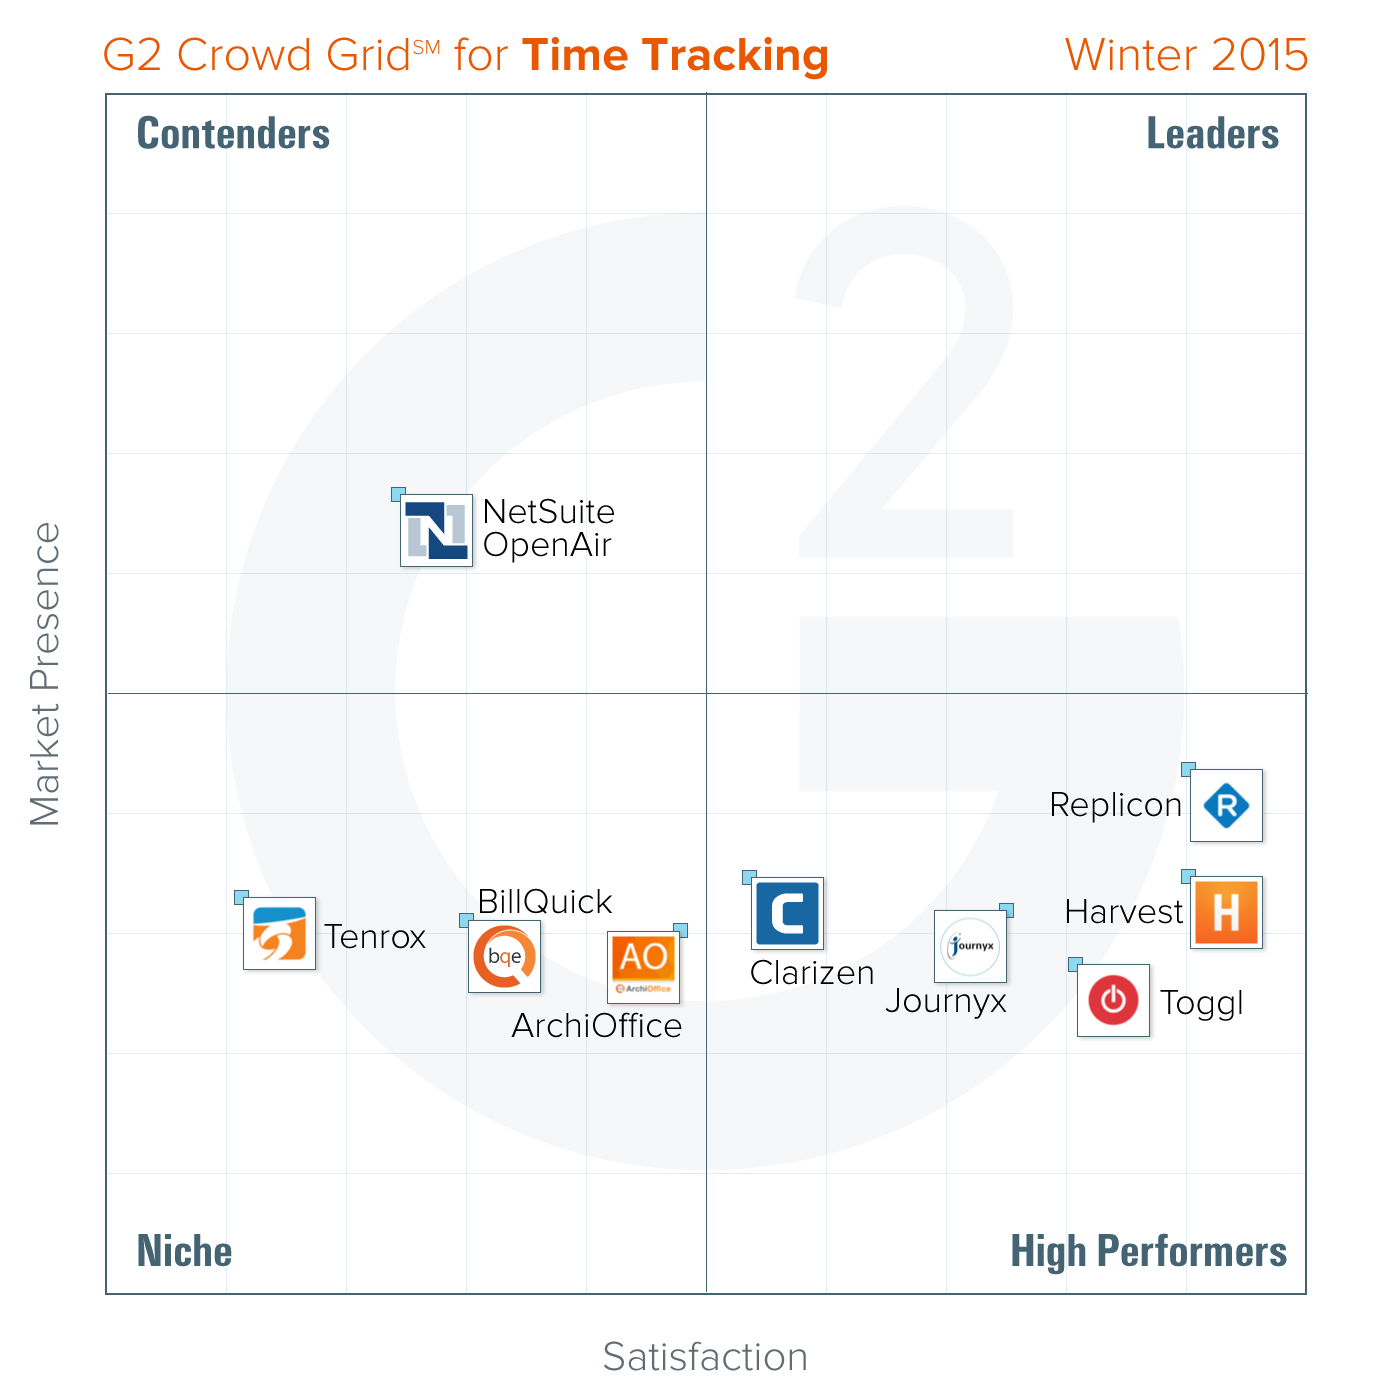 best time tracking tools winter 2015 g2 crowd